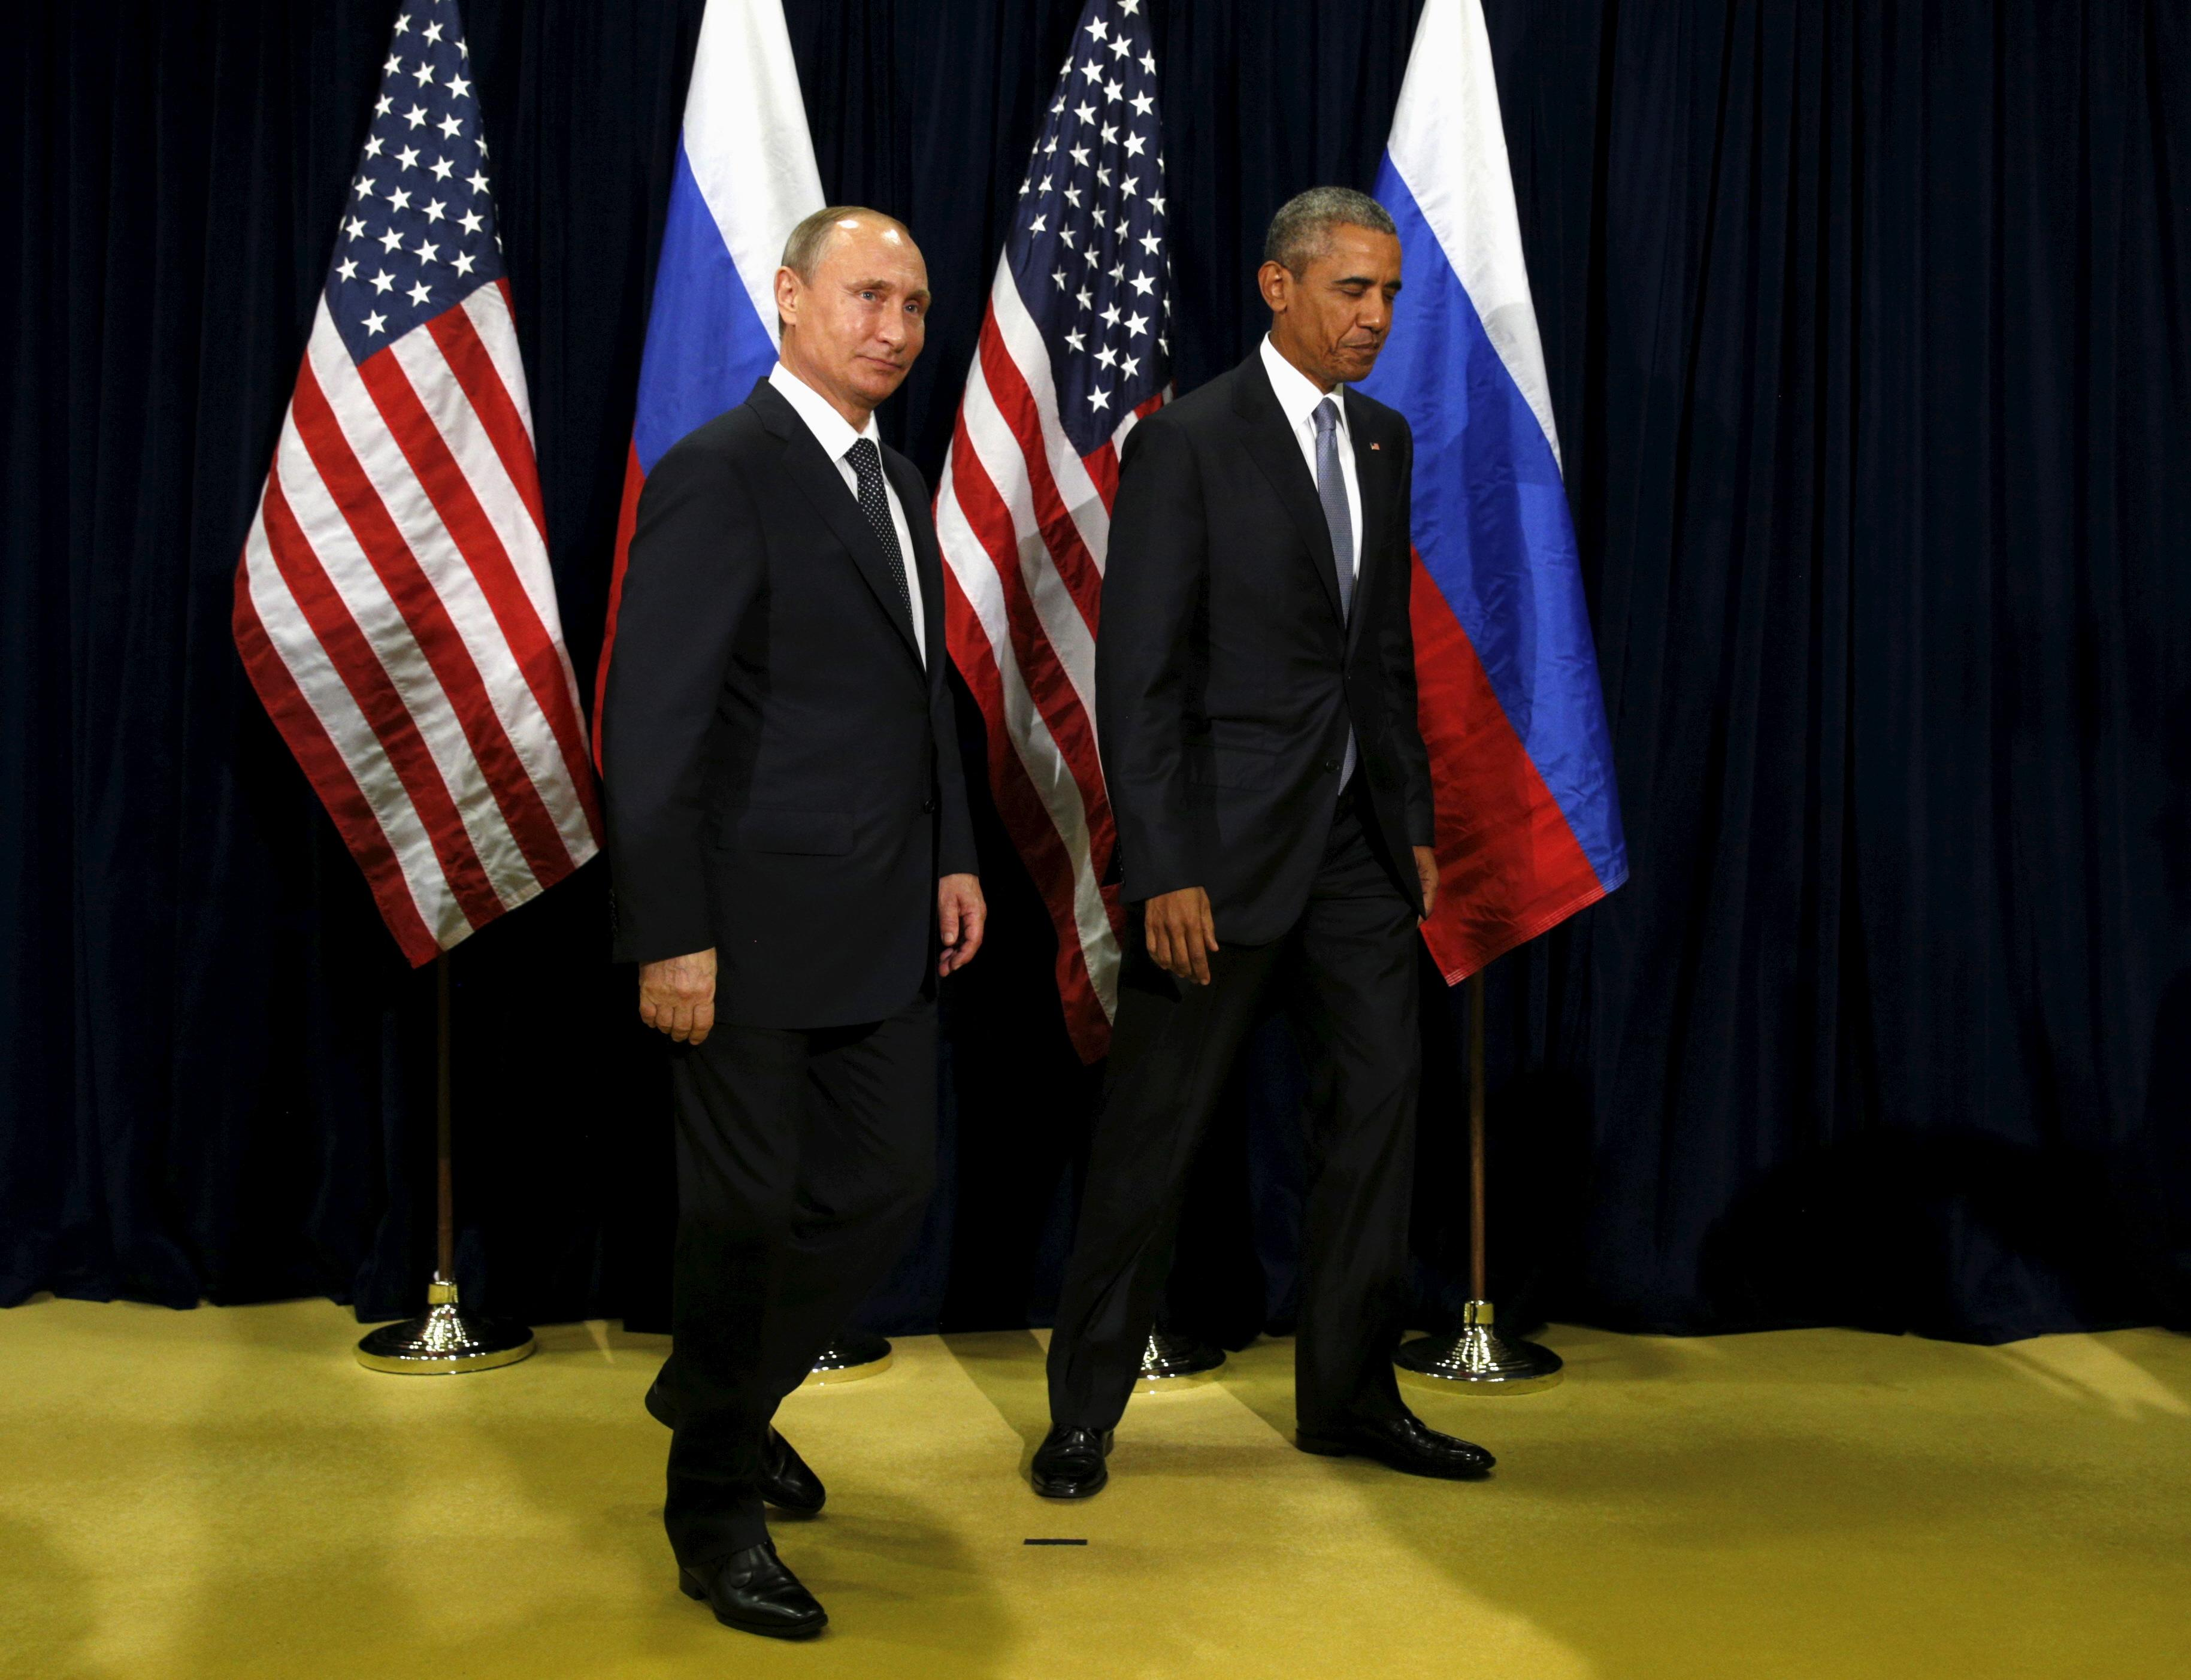 'This is victory as far as they're concerned': Obama could be wrong about Putin's big moves in Syria